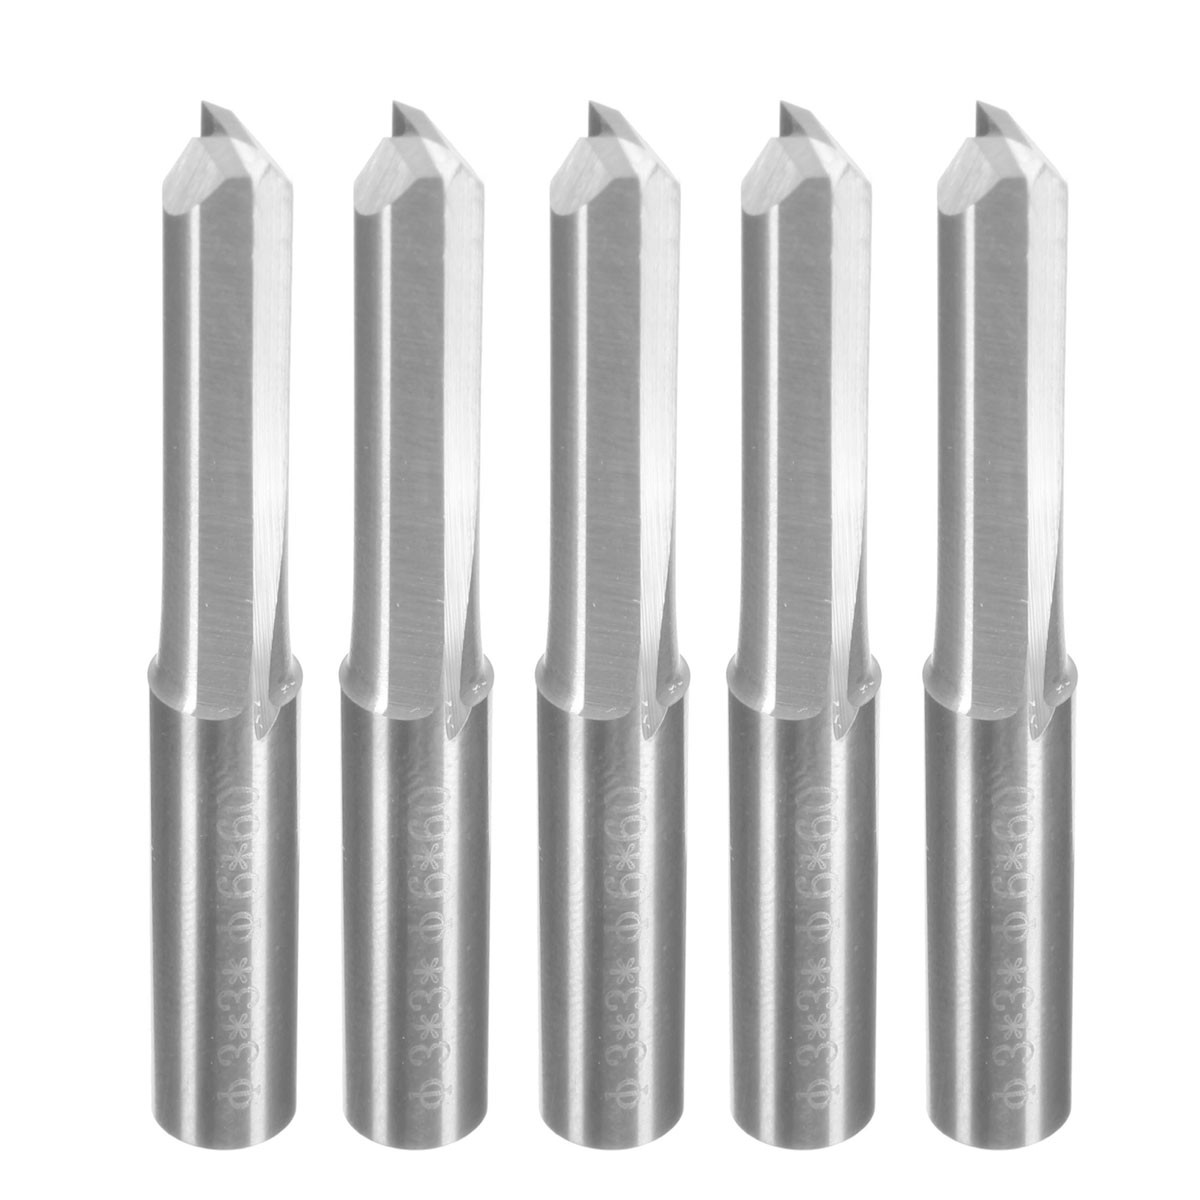 5pcs 6mm 22mm Double Flute Straight Slot CNC Router Bits Endmill Milling Cutter for Woodworking 5pcs lot 4mm 12mm high quality carbide endmill double two flute spiral bits cnc router bits for wood milling tools 2lx4 12x5